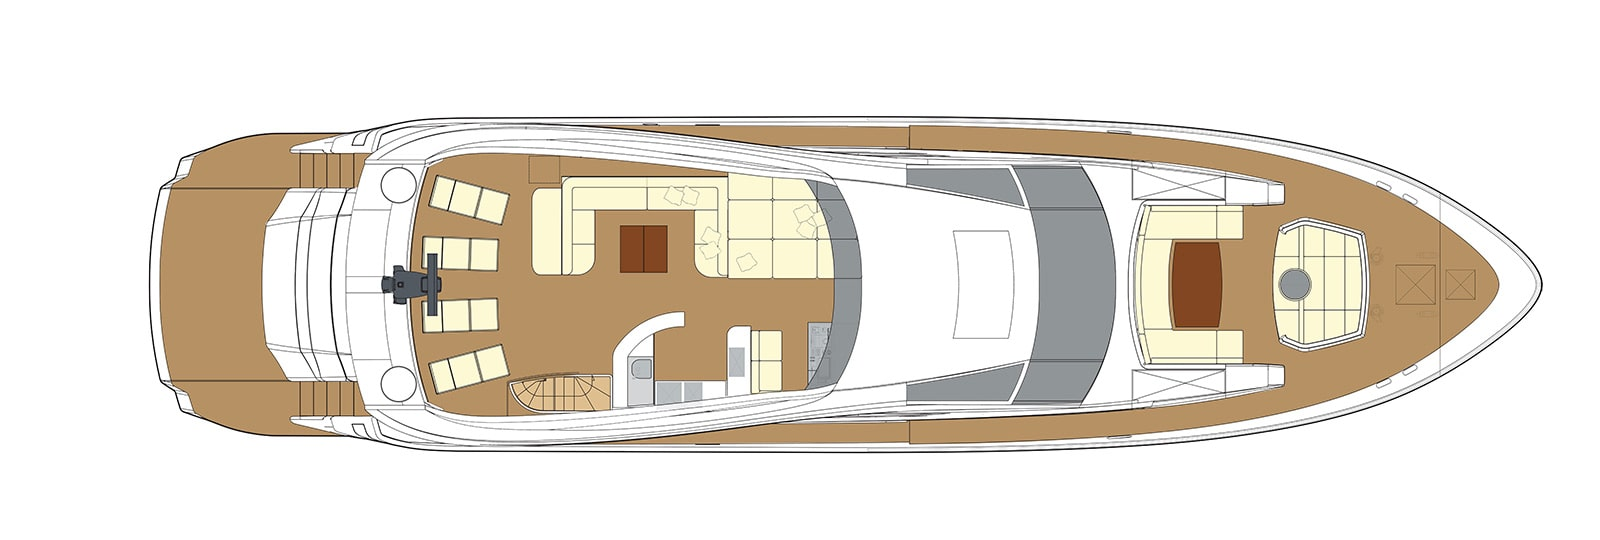 F93 Upper Deck - Fly Bridge Yacht